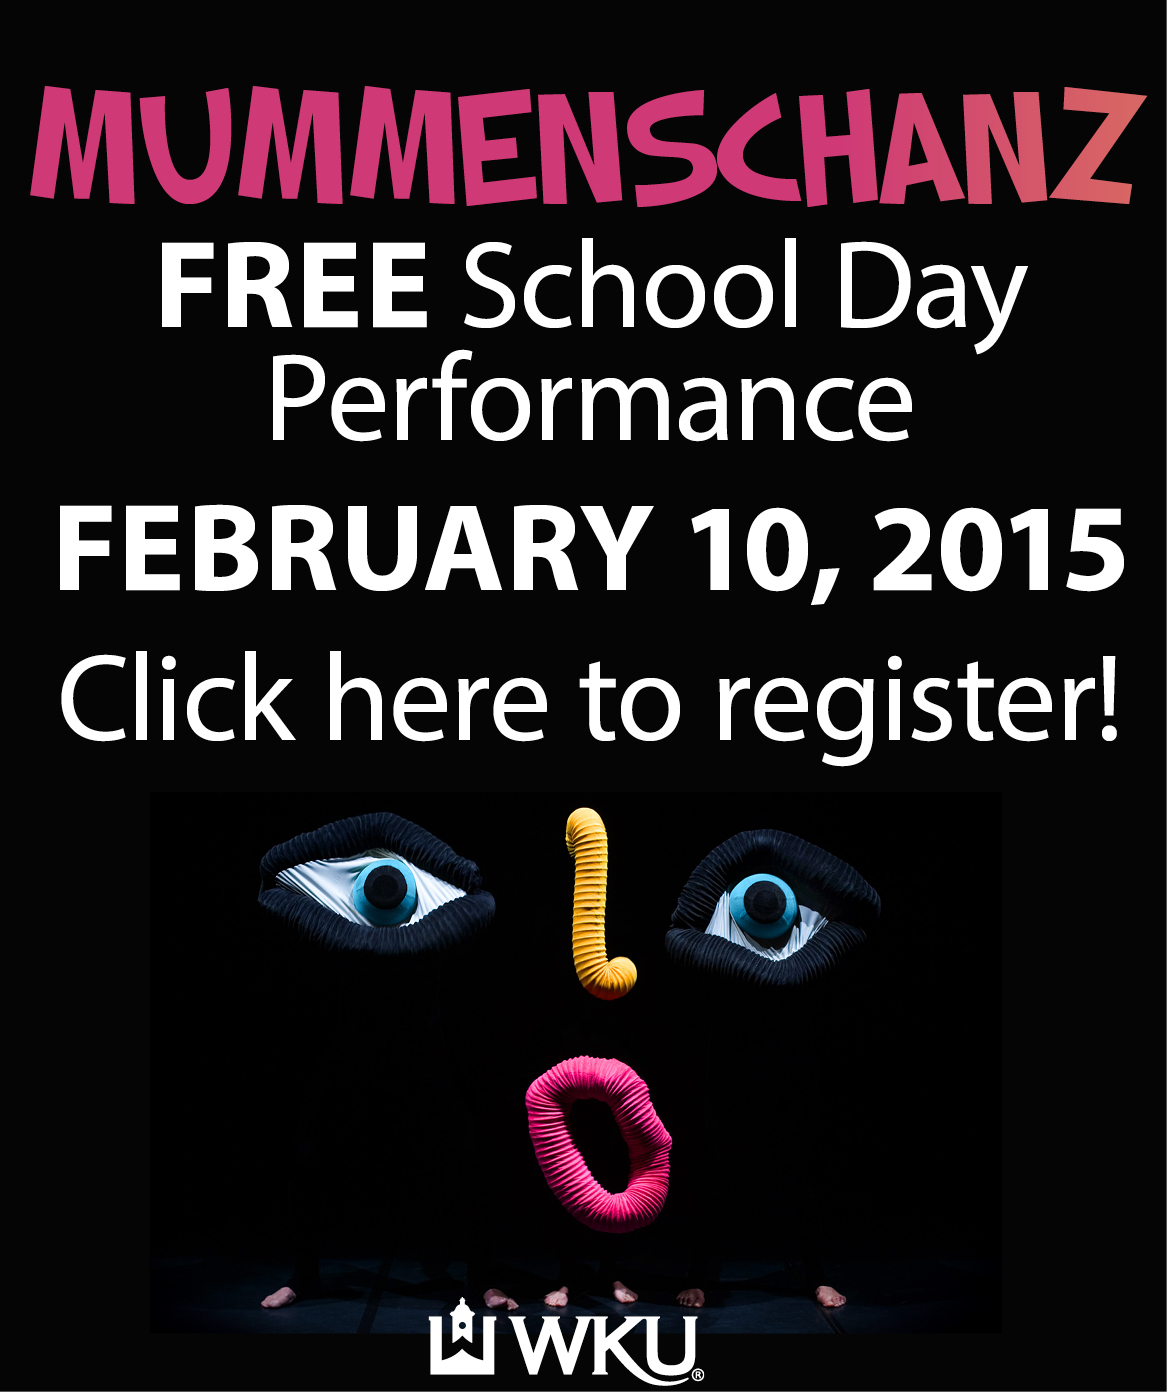 mummenschanz school day registration